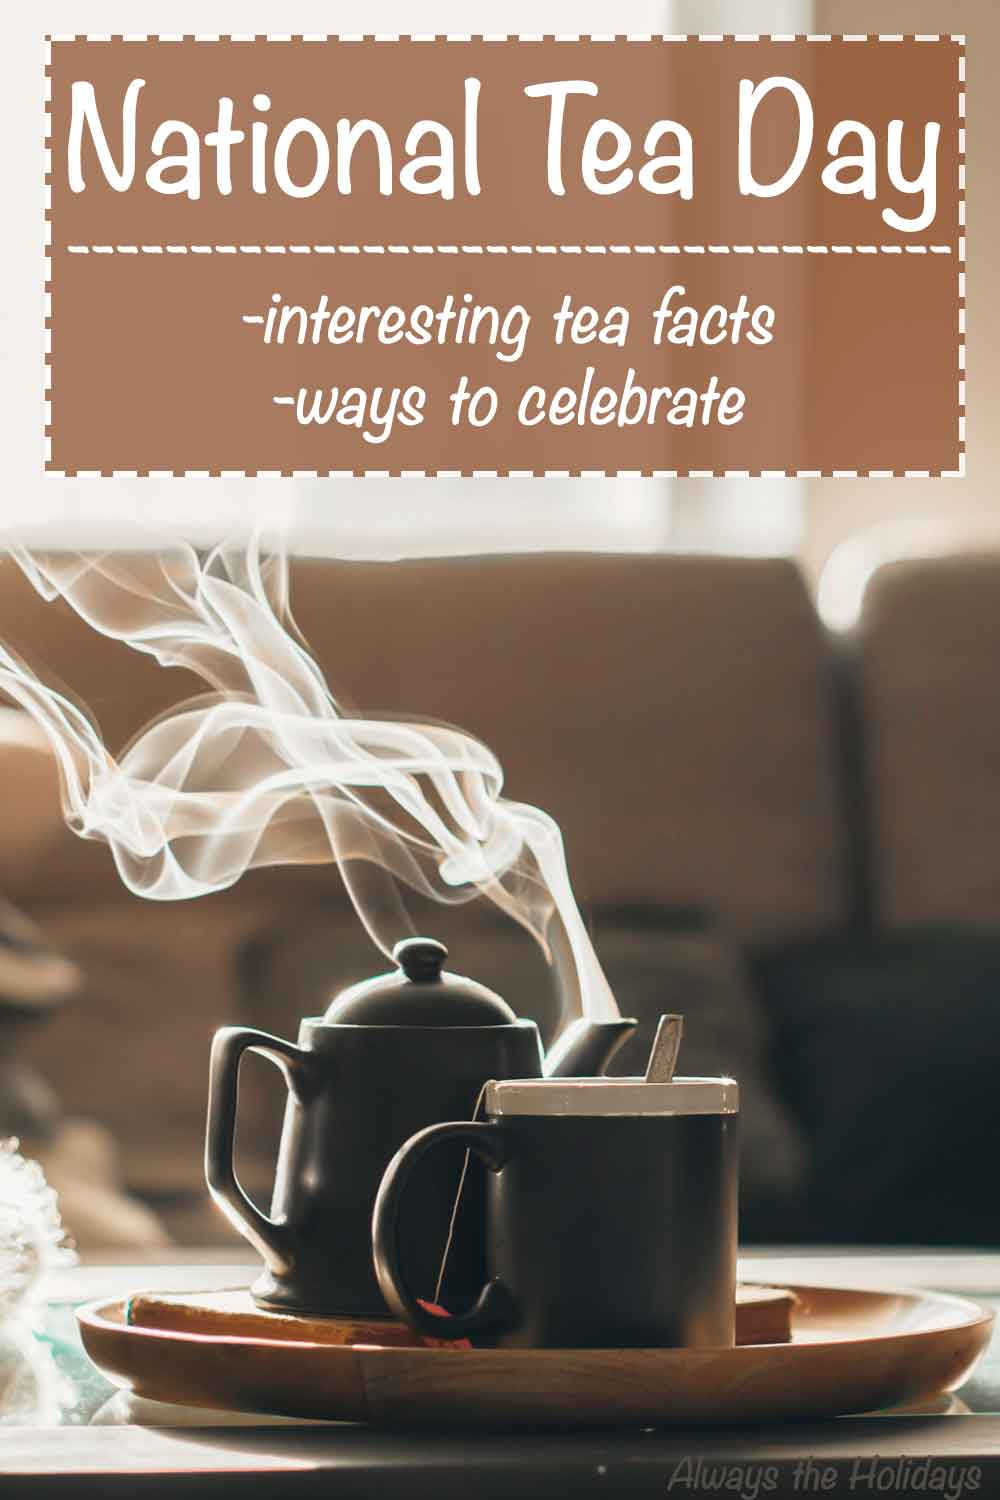 "A pot of tea and cup both steaming on a living room coffee table with a text overlay above it reading ""National Tea Day - Interesting tea facts and ways to celebrate""."